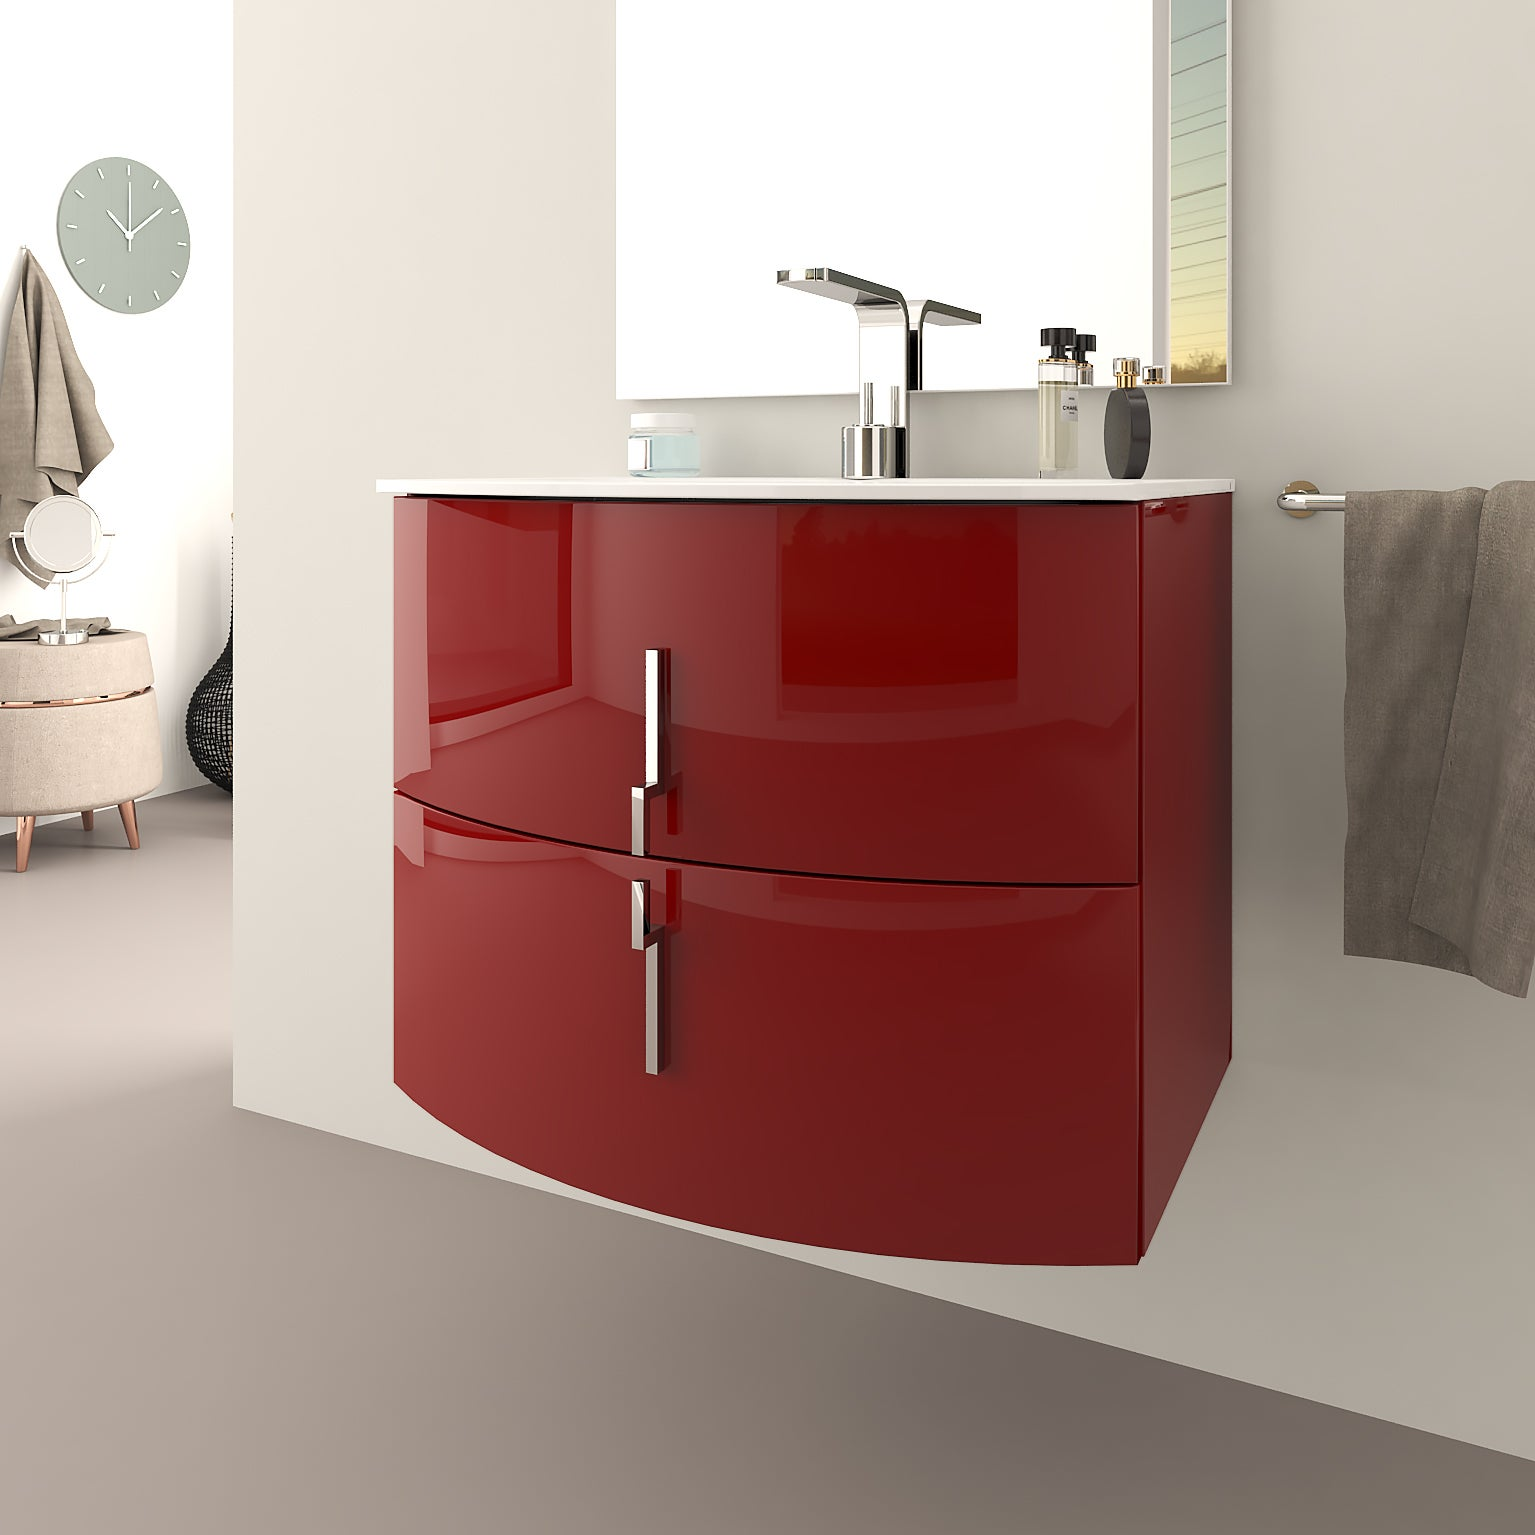 Meuble simple vasque l.10 x H.10, rouge, Sting